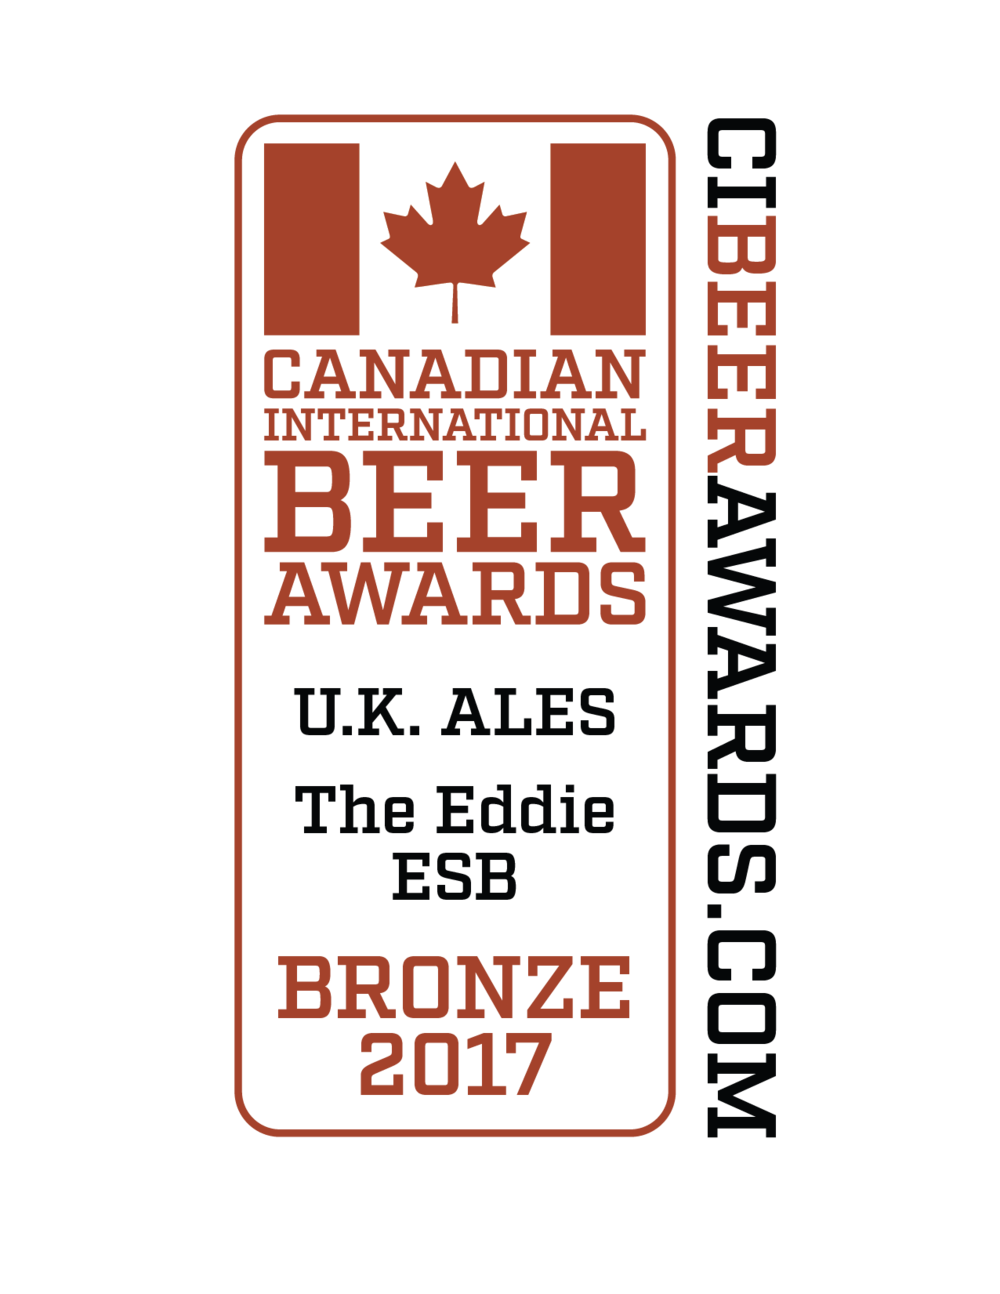 2017 The Eddie ESB - Our second seasonal, The Eddie Extra Special Bitter, placed bronze in the U.K. Ales category in the Canadian International Beer Awards held at the 2017 Calgary International Beerfest.